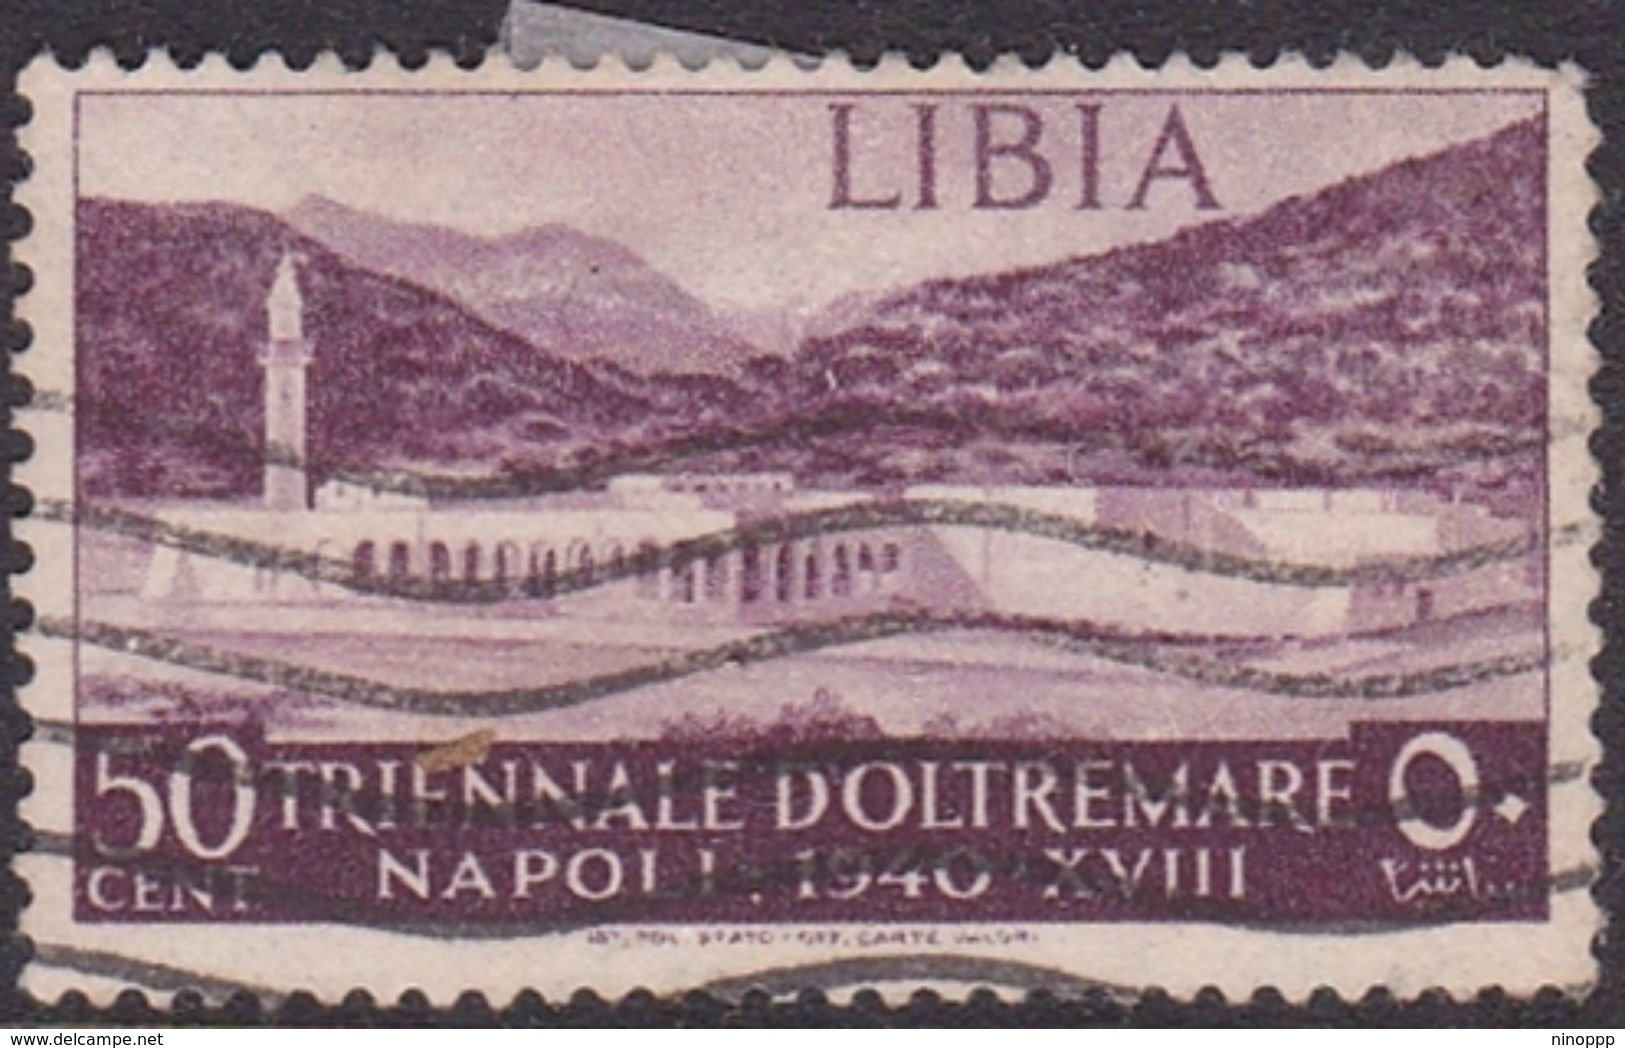 Italy-Colonies And Territories-Libya S 167 1940 Triennial Overseas Exposition,50c Lilac Used - Libya